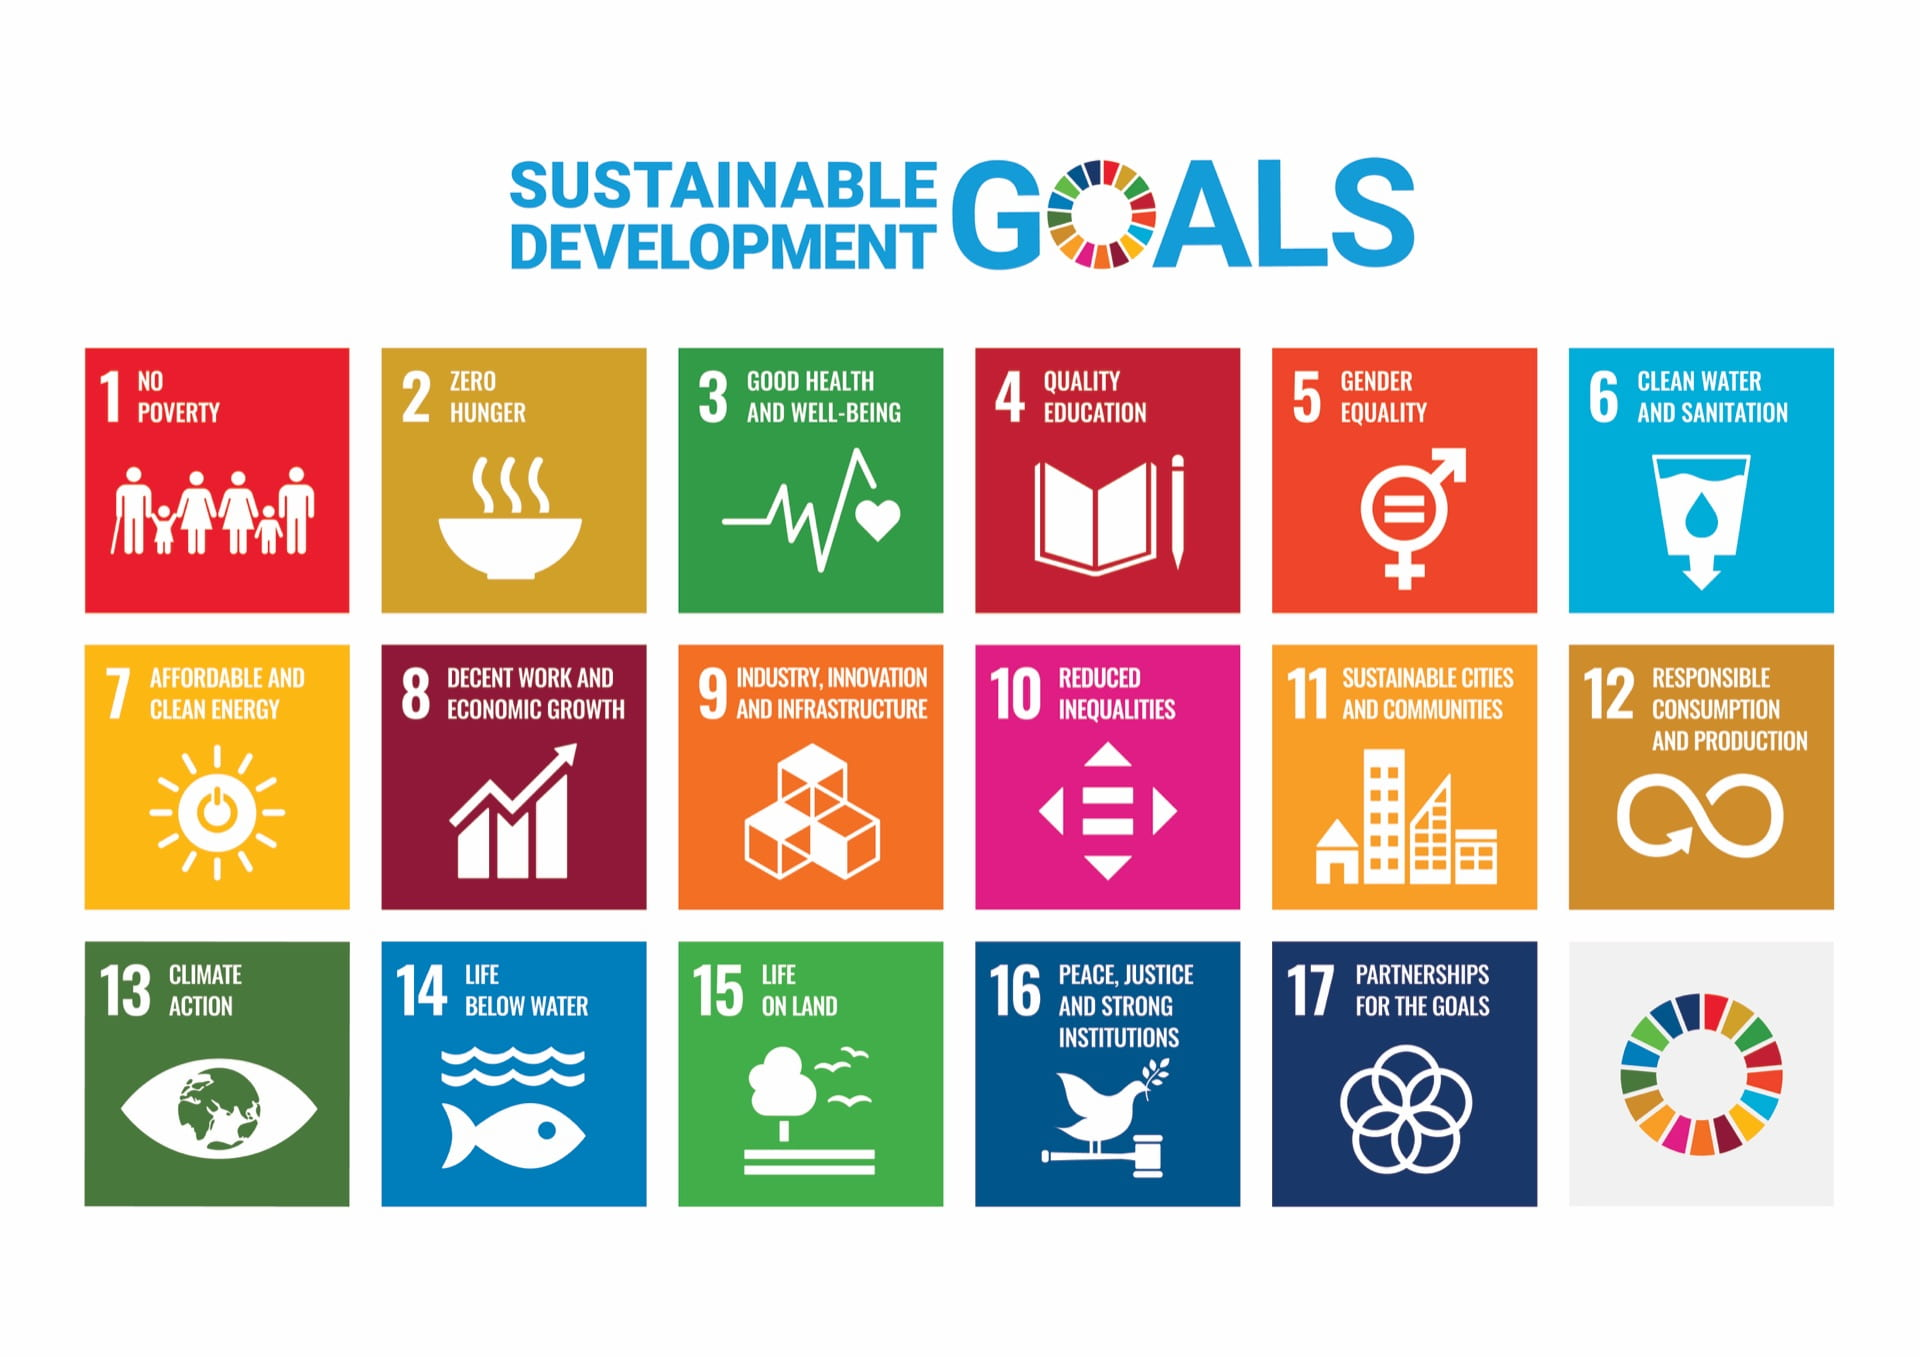 1. no poverty 2. zero hunger 3. good health and well-being 4. quality education 5. gender equality 6. clean water and sanitation 7. affordable and clean energy 8. decent work and economic growth 9. industry innovation and infrastructure 10. reduced inequalities 11. sustainable cities and communities 12. responsible consumption and production 13. climate action 14. life below water 15. life on land 16. peace and justice strong institutions 17. partnerships for the goals